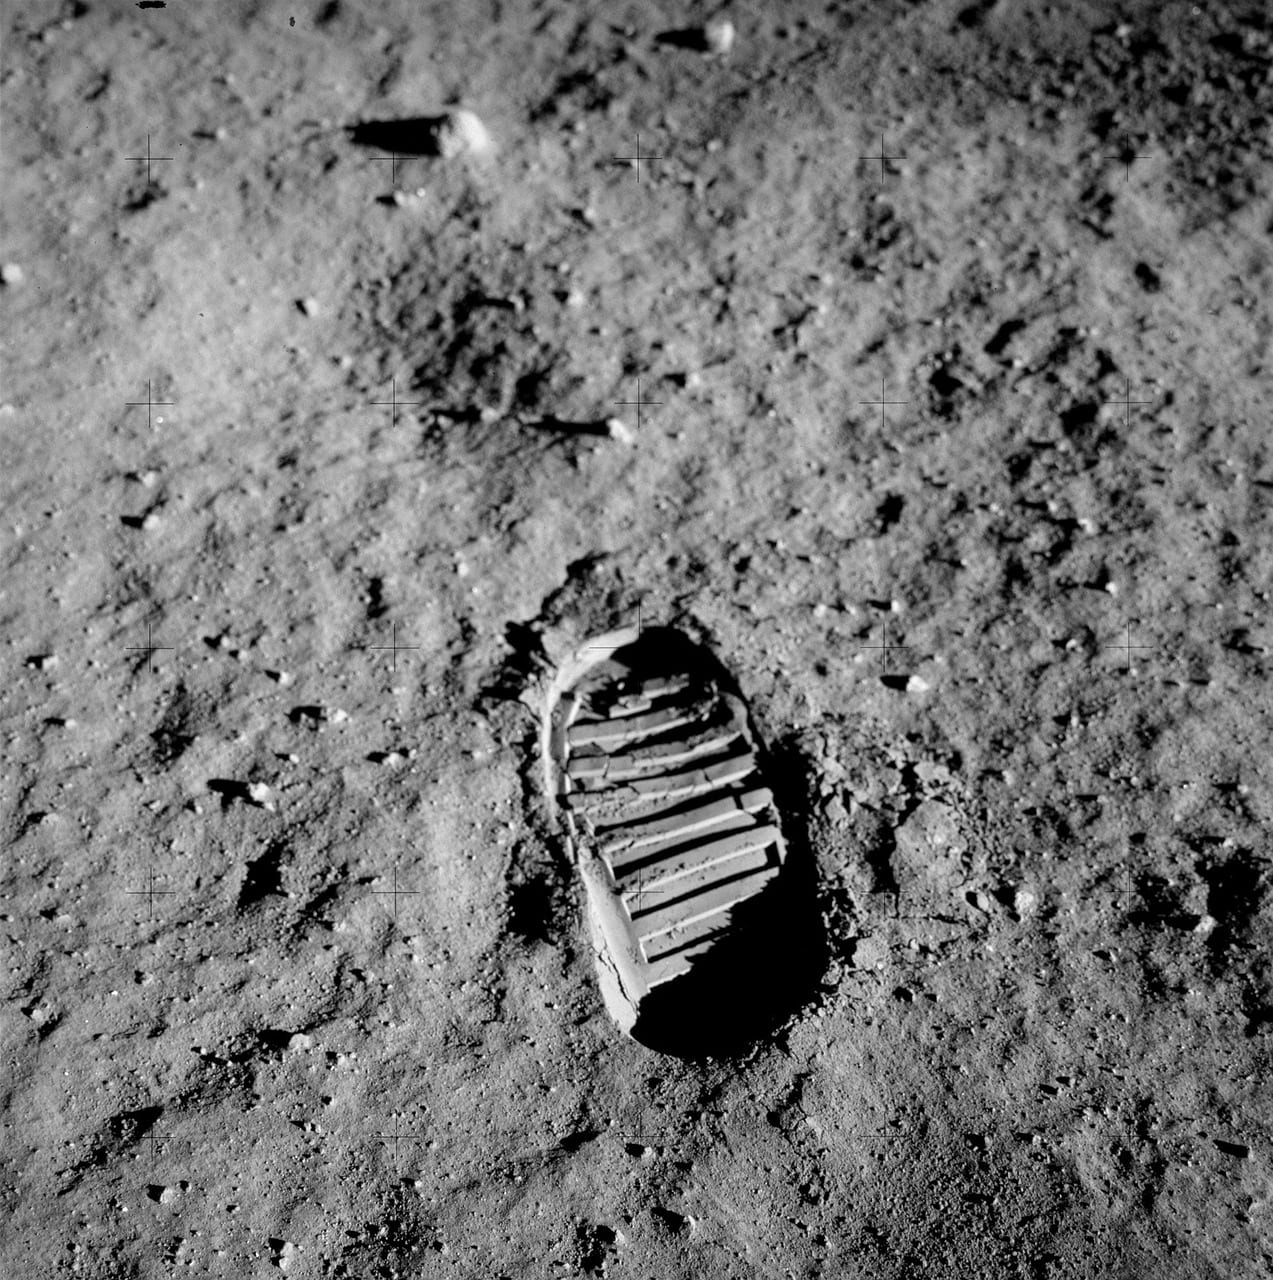 New Resources On The Apollo 11 Moon Landing